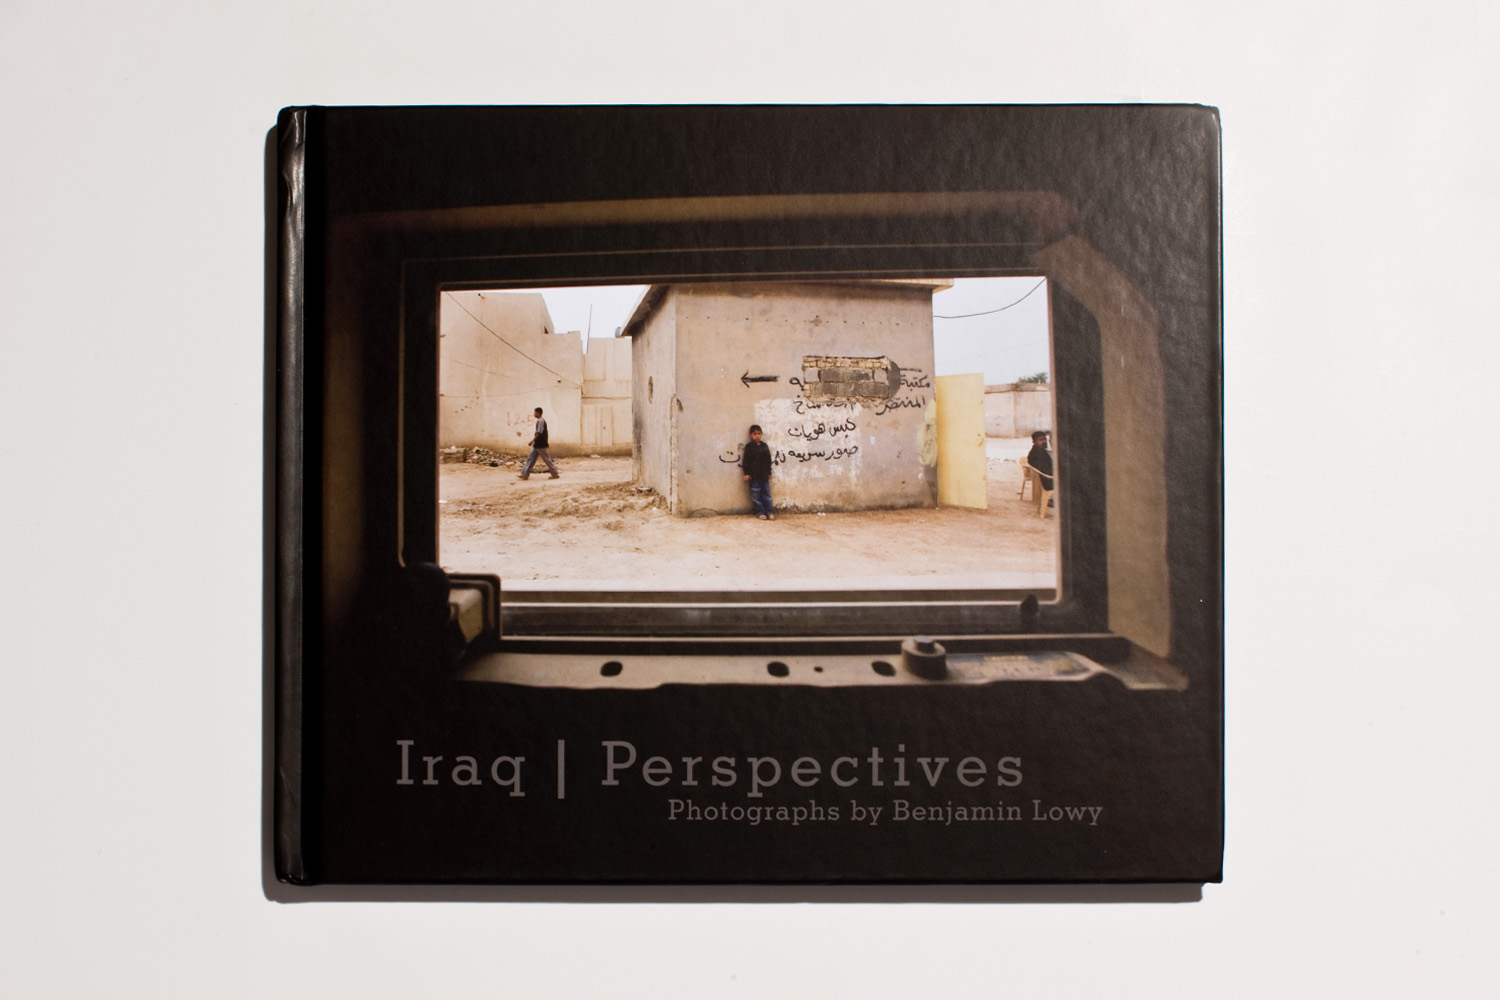 Iraq | Perspectives by Benjamin Lowy selected by Larissa Leclair, founder of the Indie Photobook Library